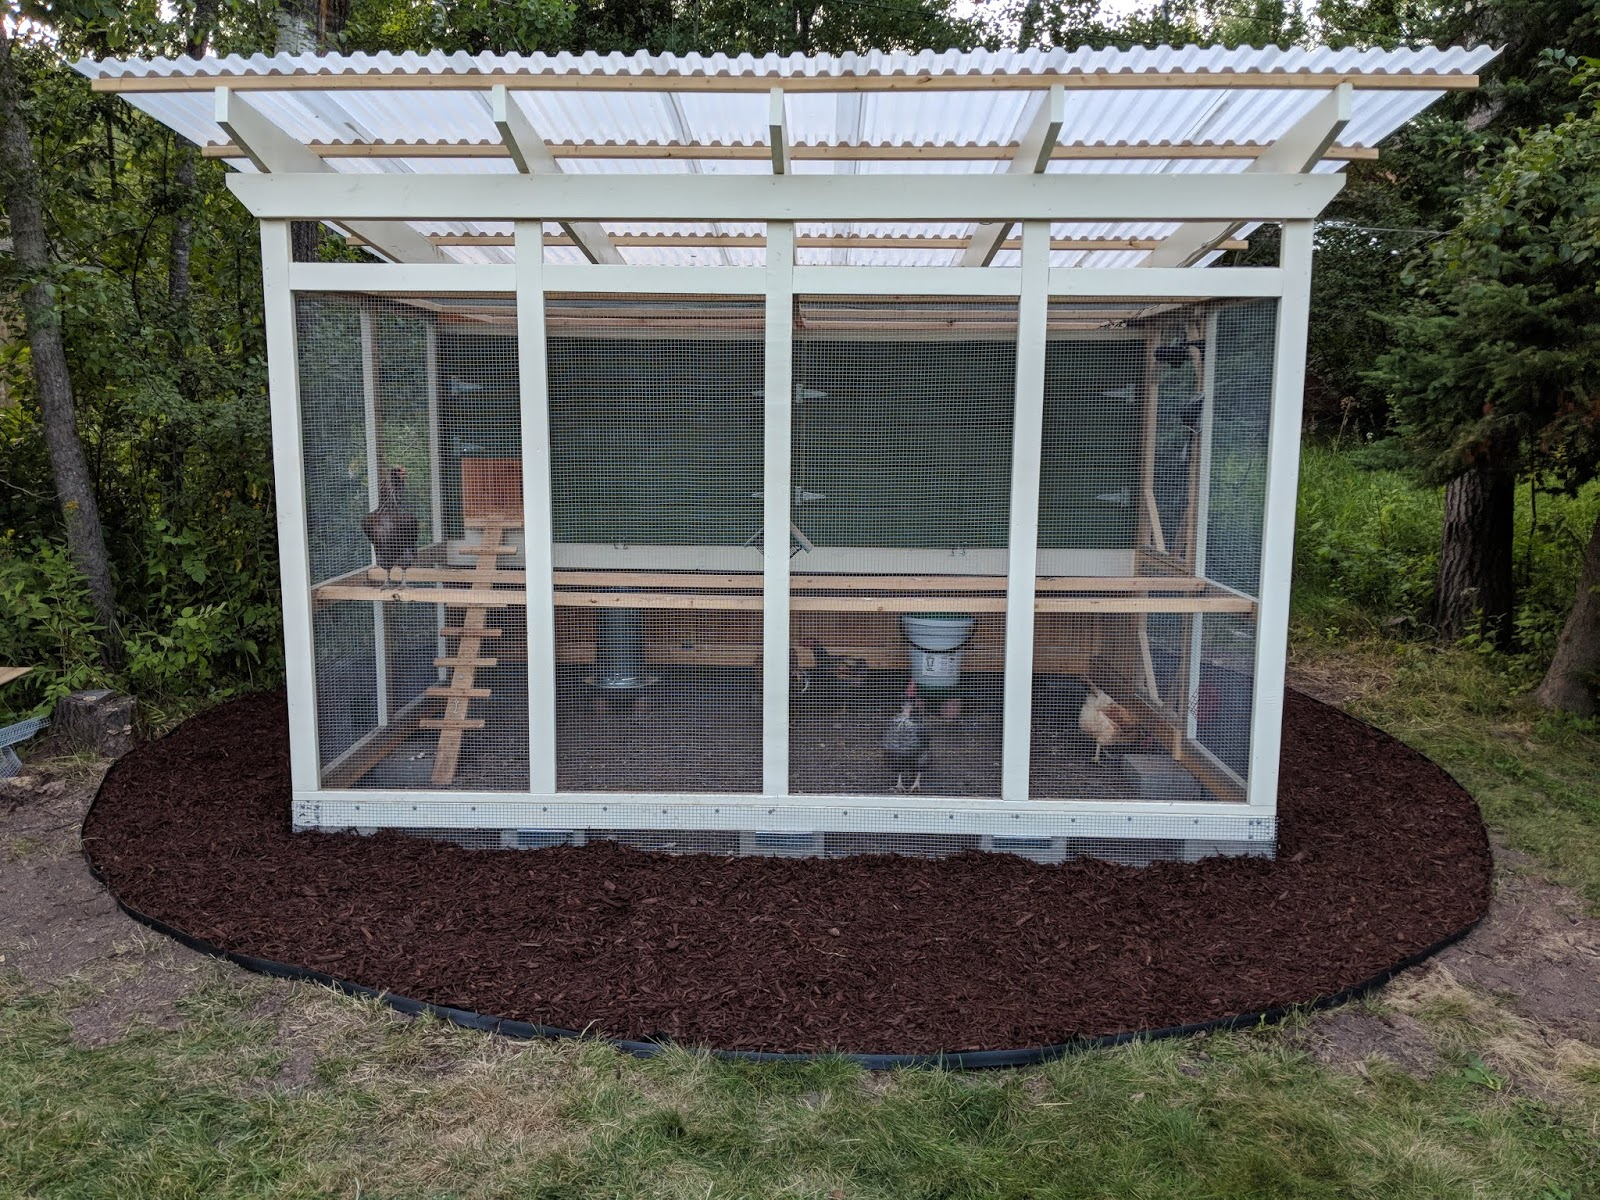 Bim Chapters Off Topic My New Urban Chicken Coop